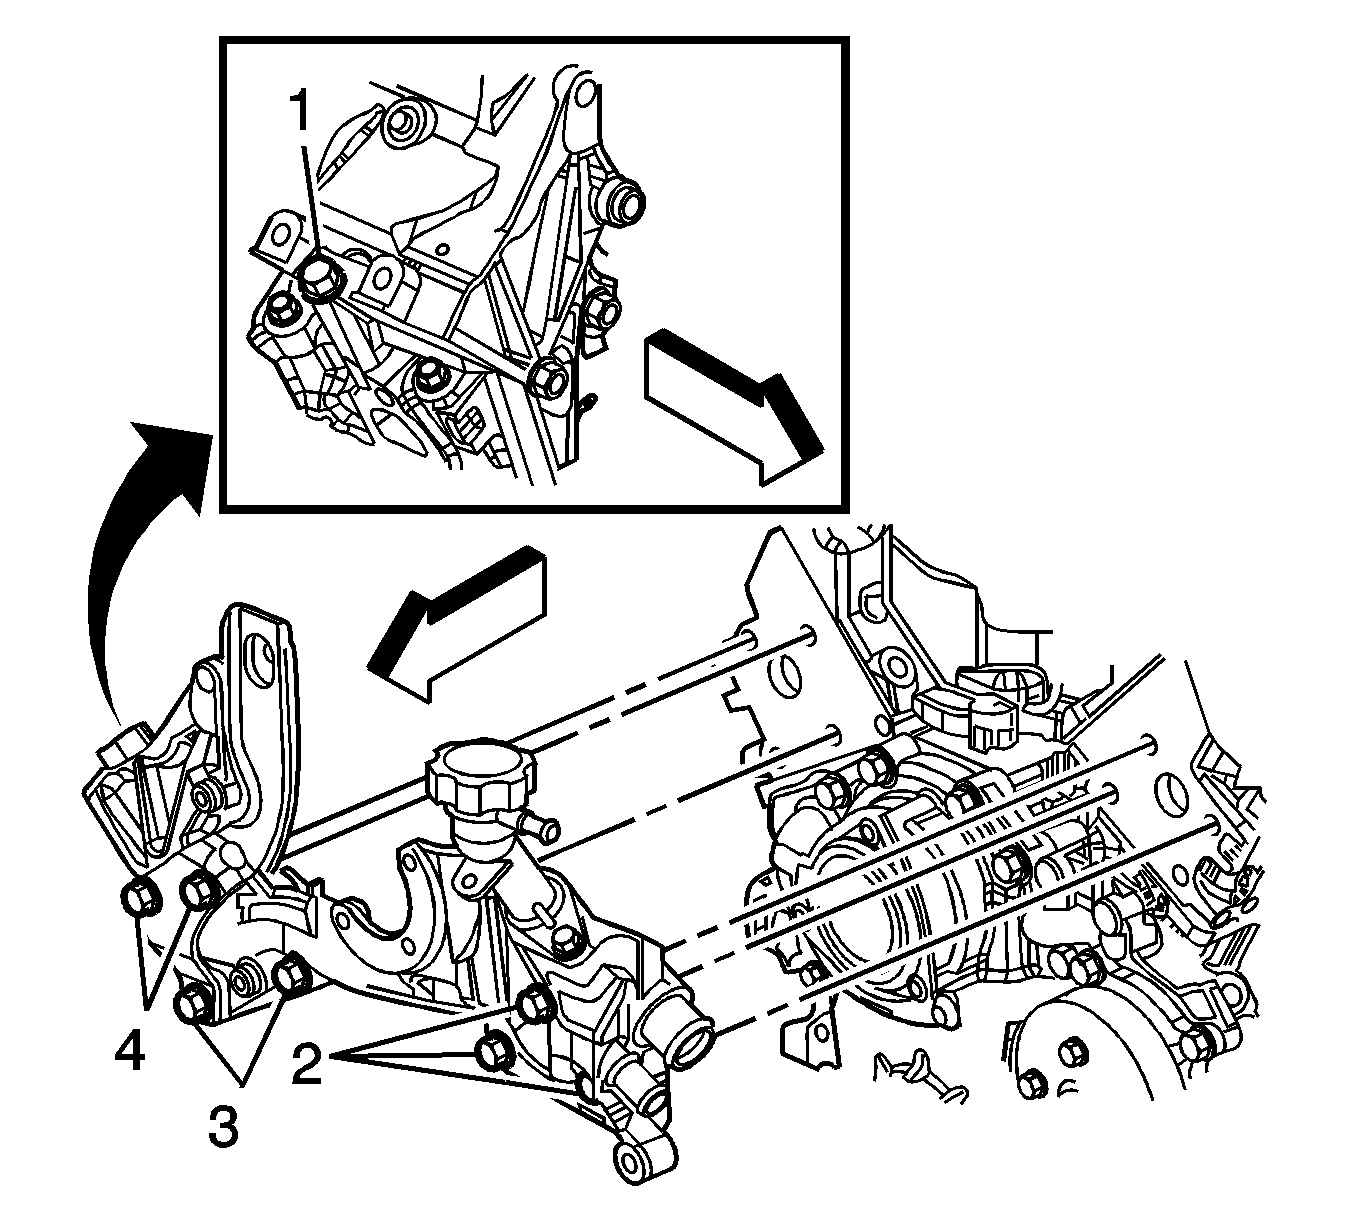 hight resolution of chevy impala engine diagram on chevy impala 2003 engine fans wiring 2003 chevy impala heater hose pipe on chevy malibu 3 1 engine diagram